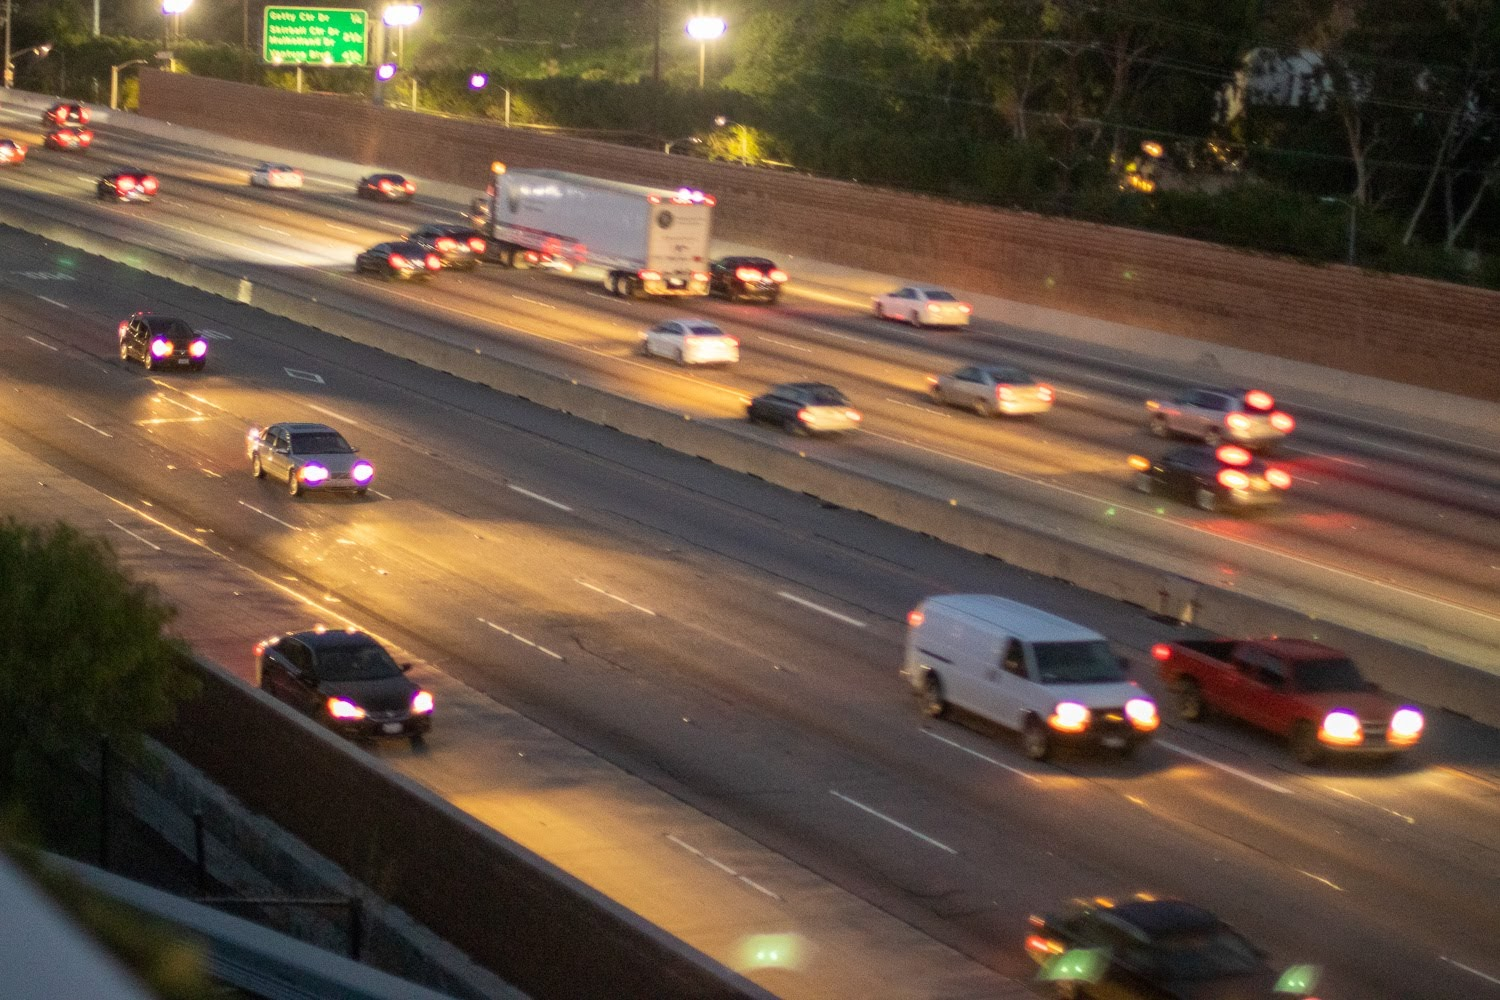 Los Angeles, CA – 5 Hurt in Friday Crash on 210 Freeway